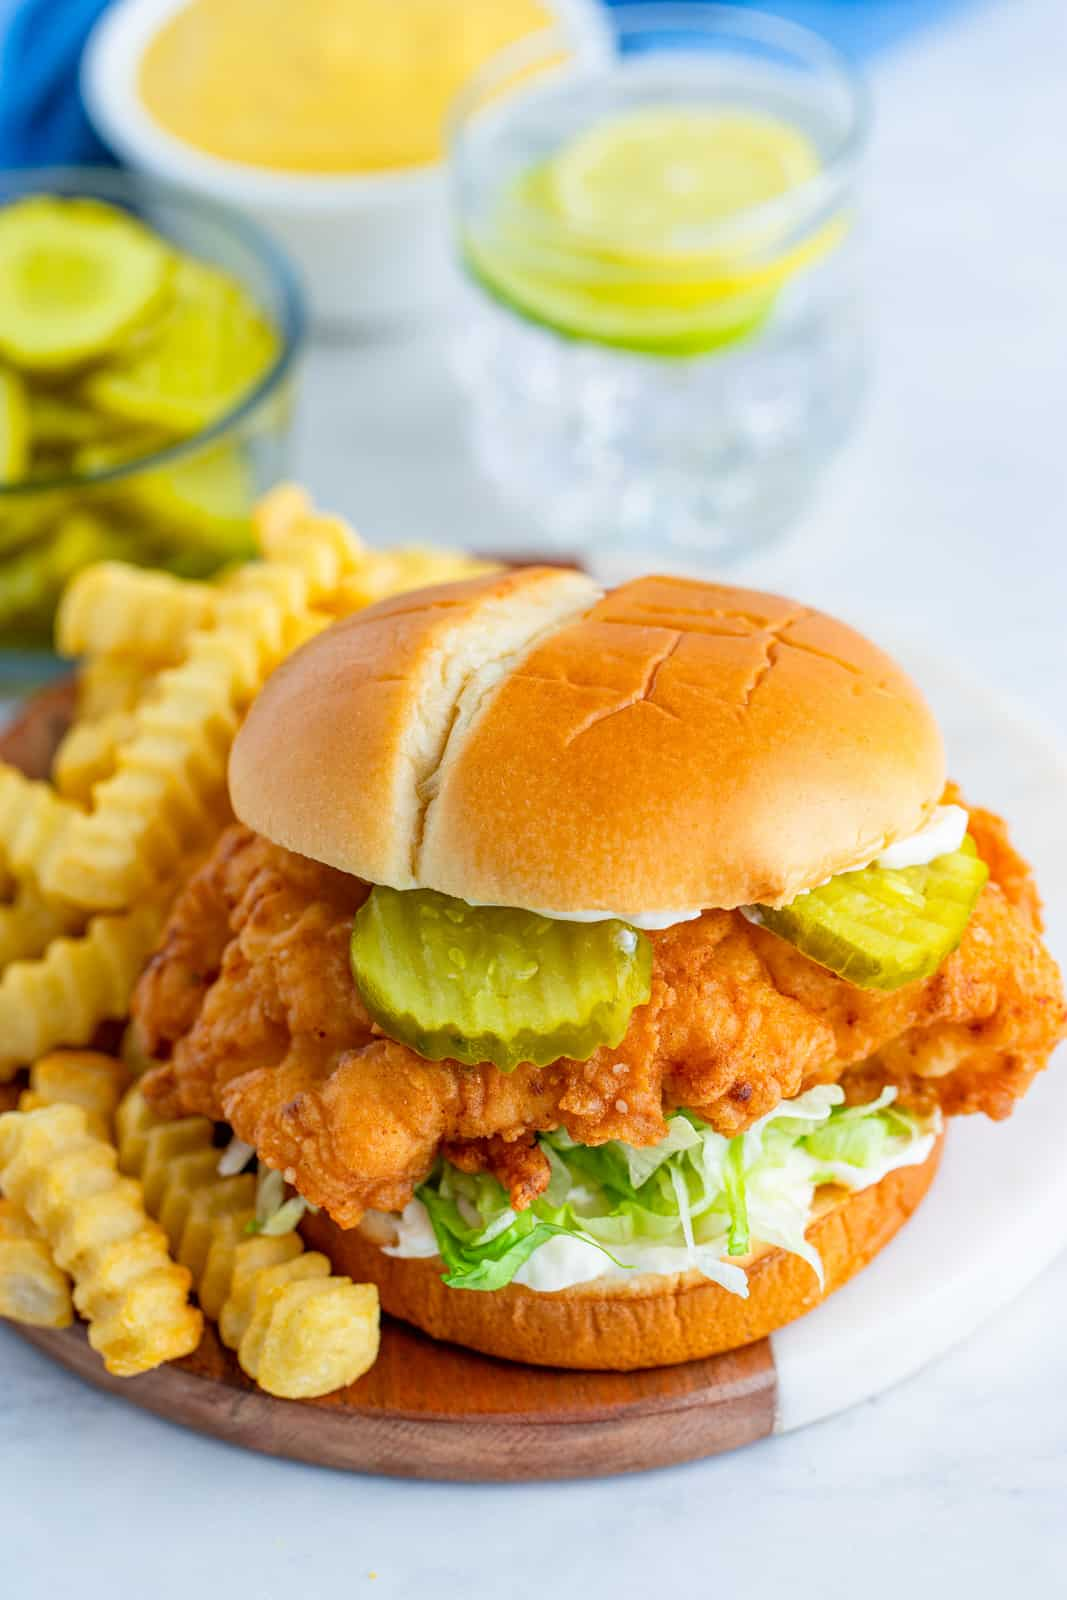 Crispy Chicken Sandwich overhead showing lettuce and pickles